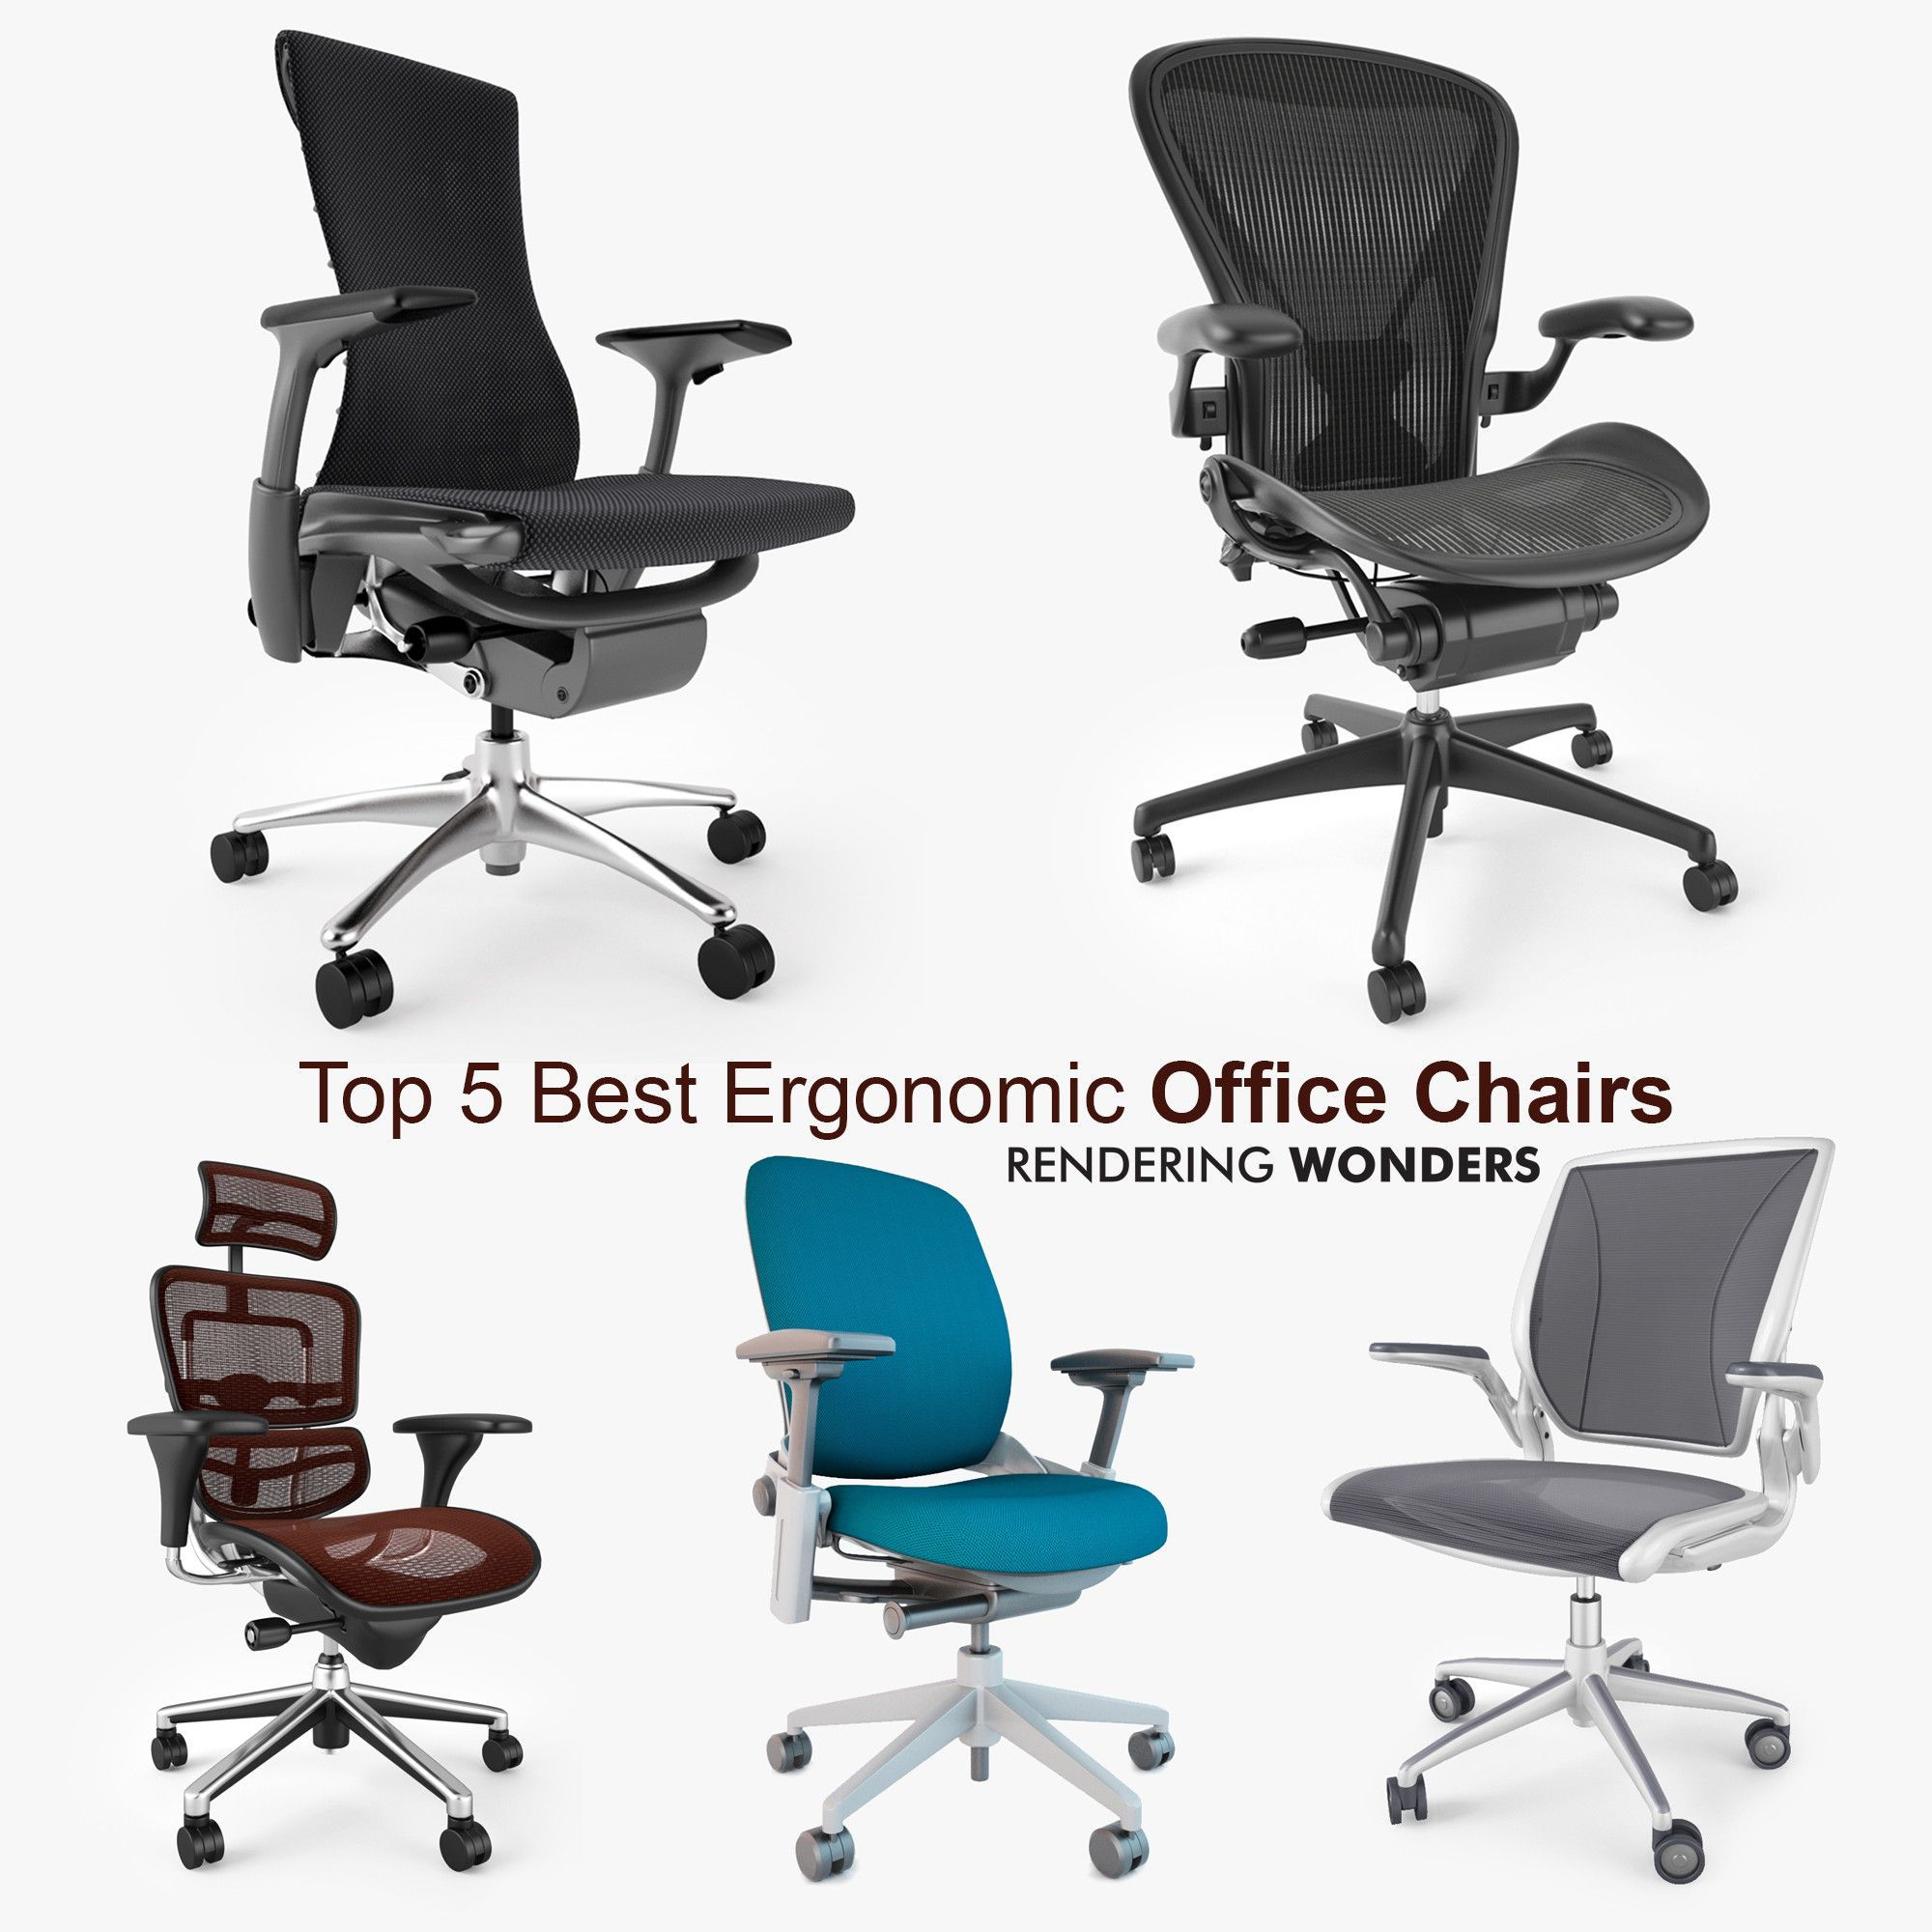 5 Best Ergonomic fice Chairs 3D Max 3D Model